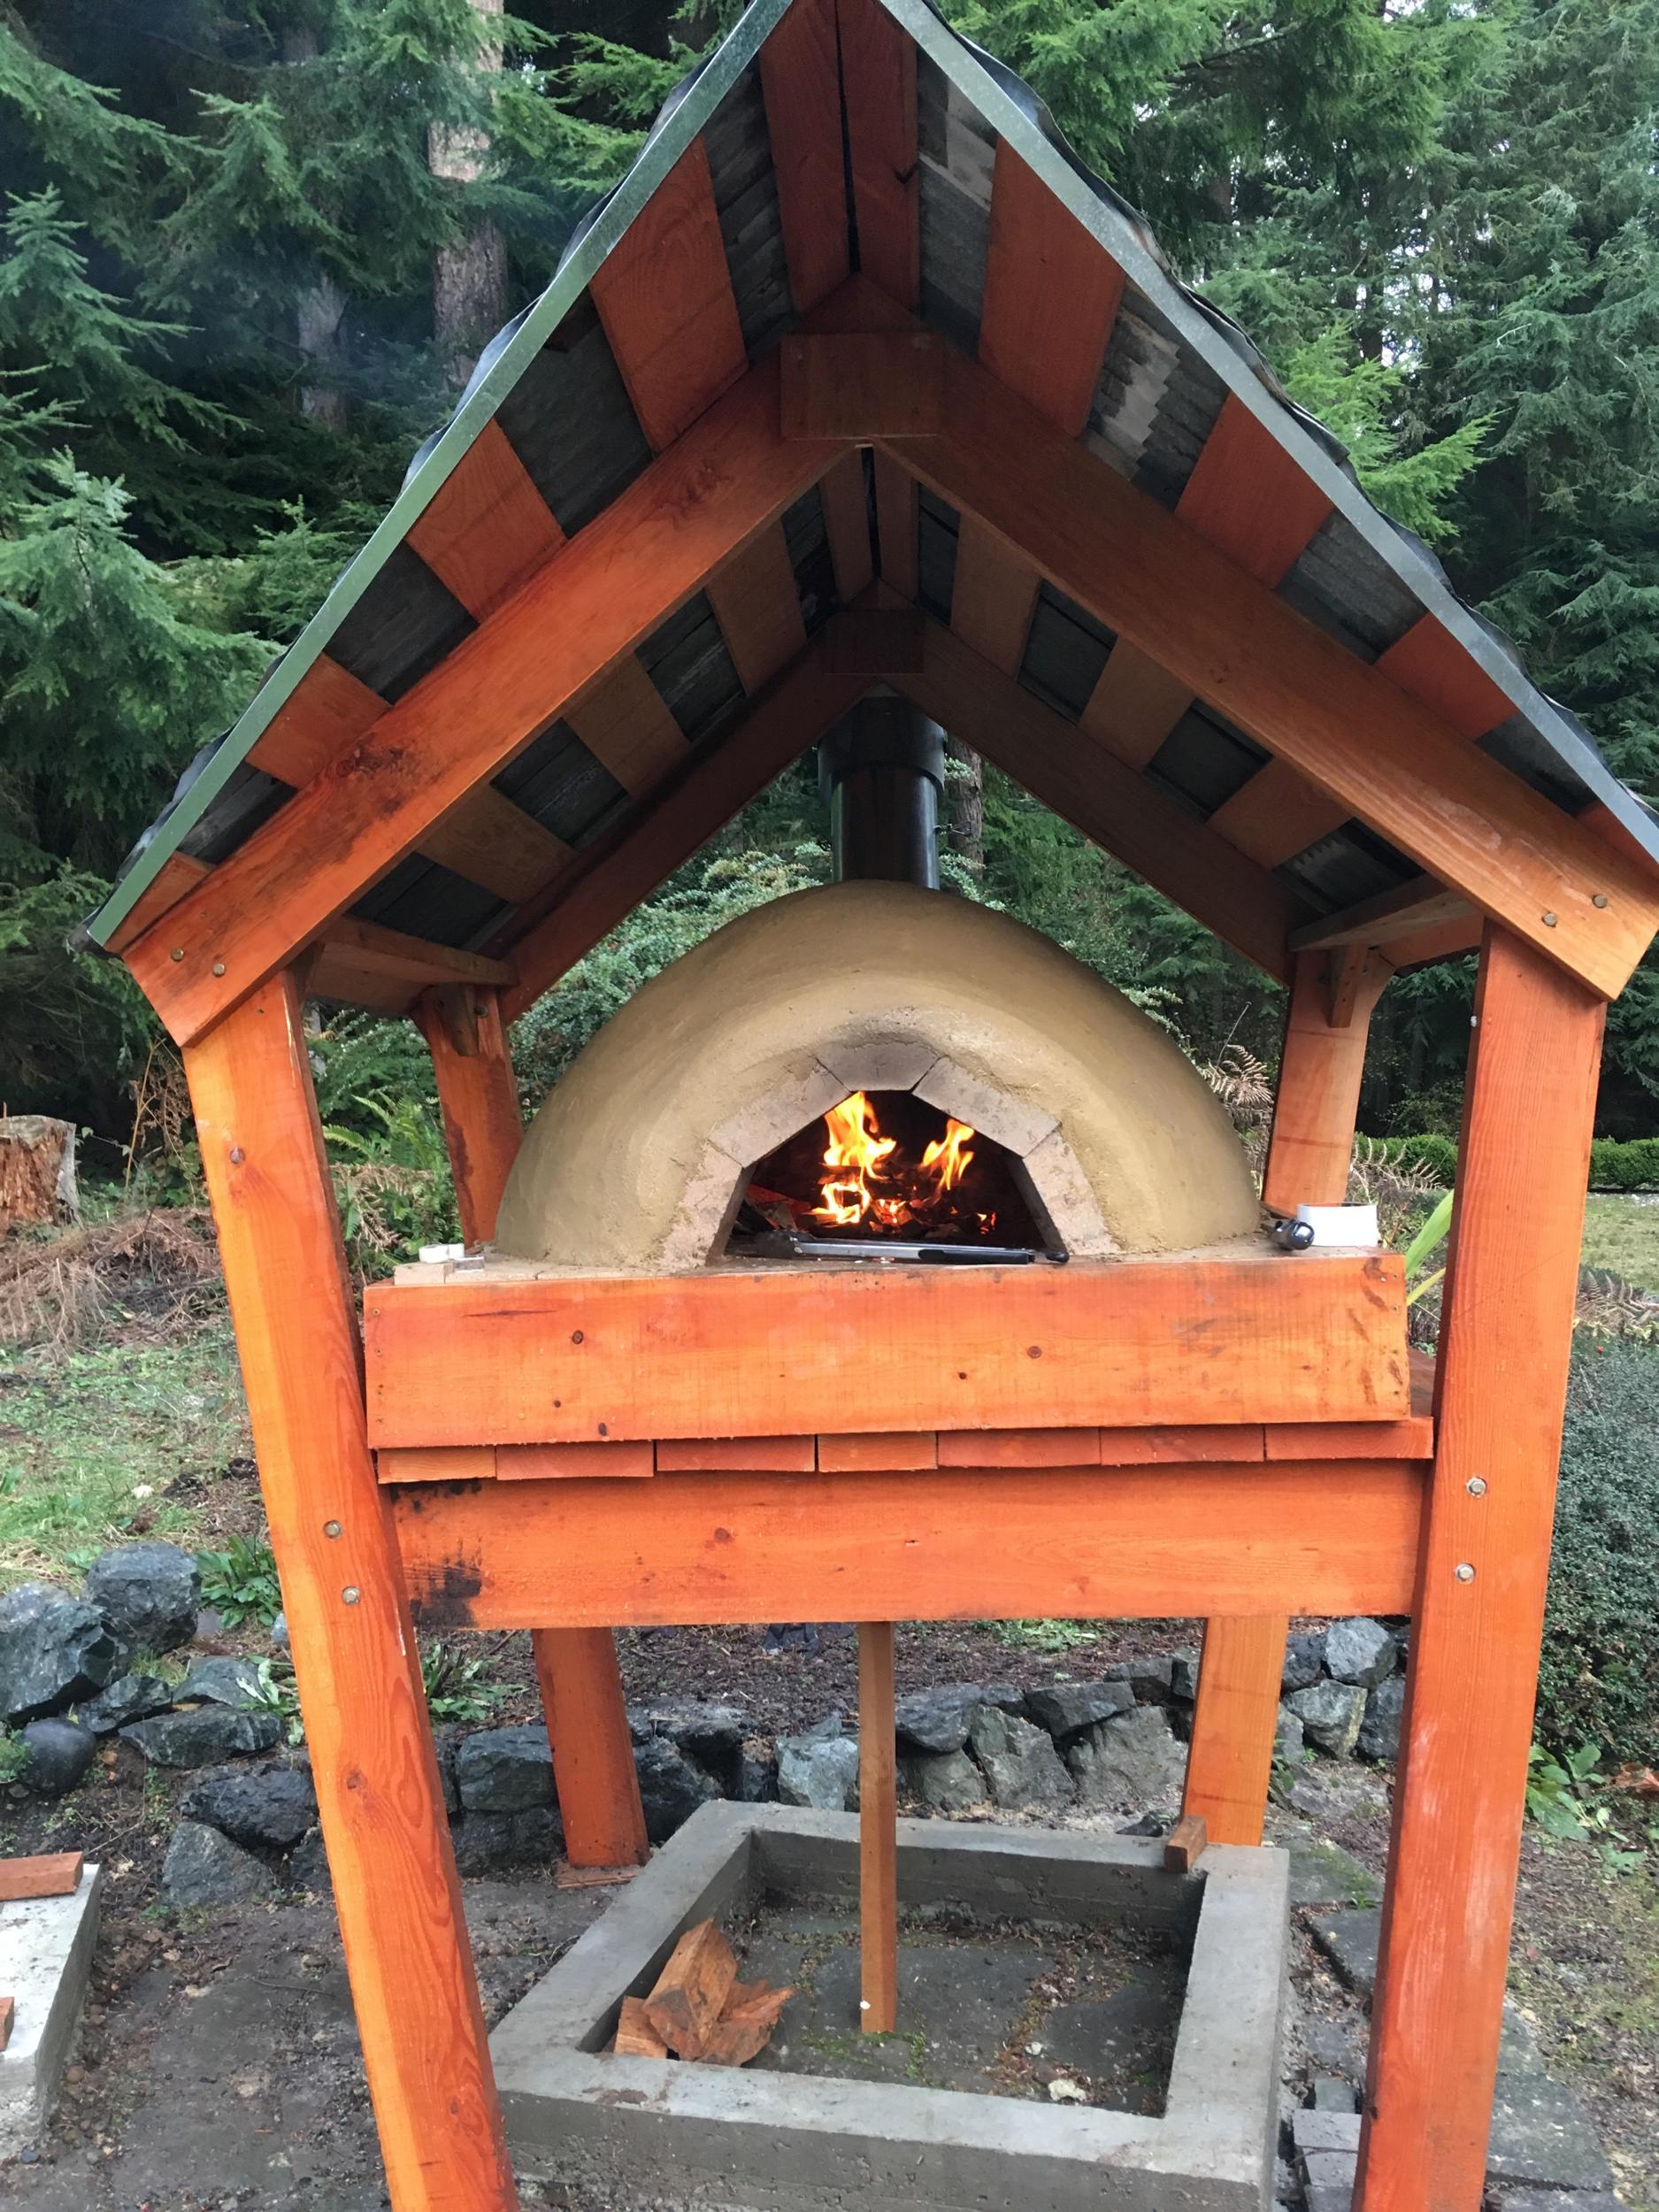 Oven with chimney